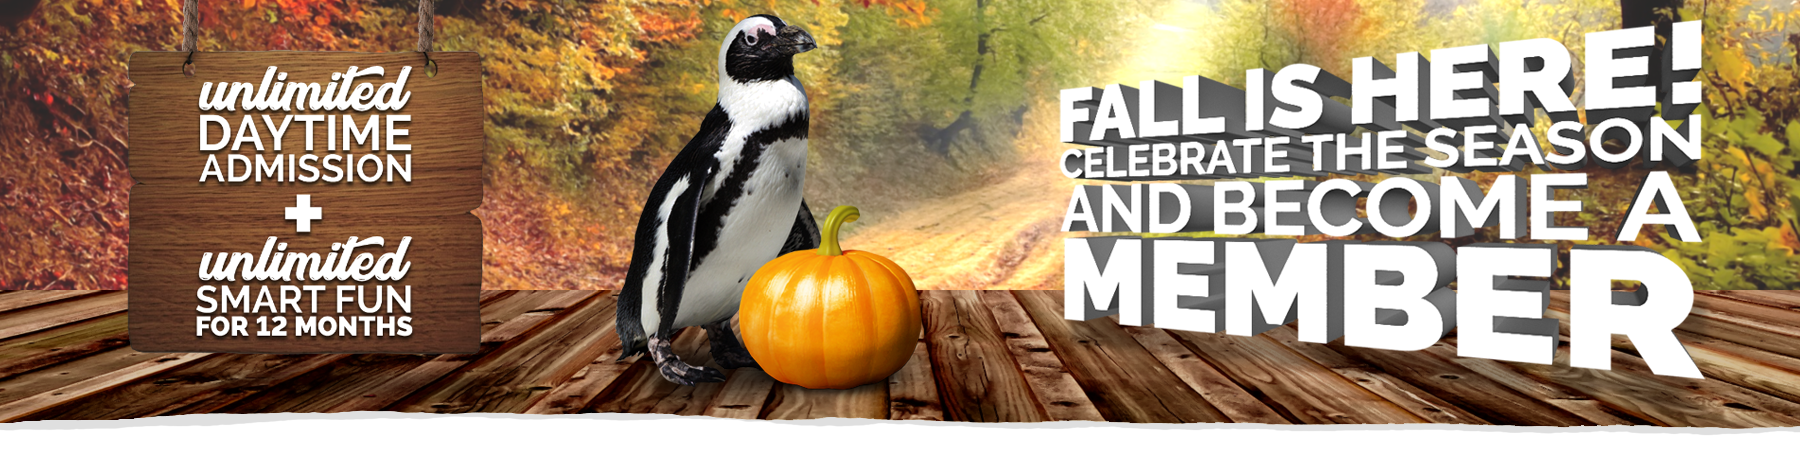 Join the Zoo: Enjoy Free Daytime Admission All Year Long